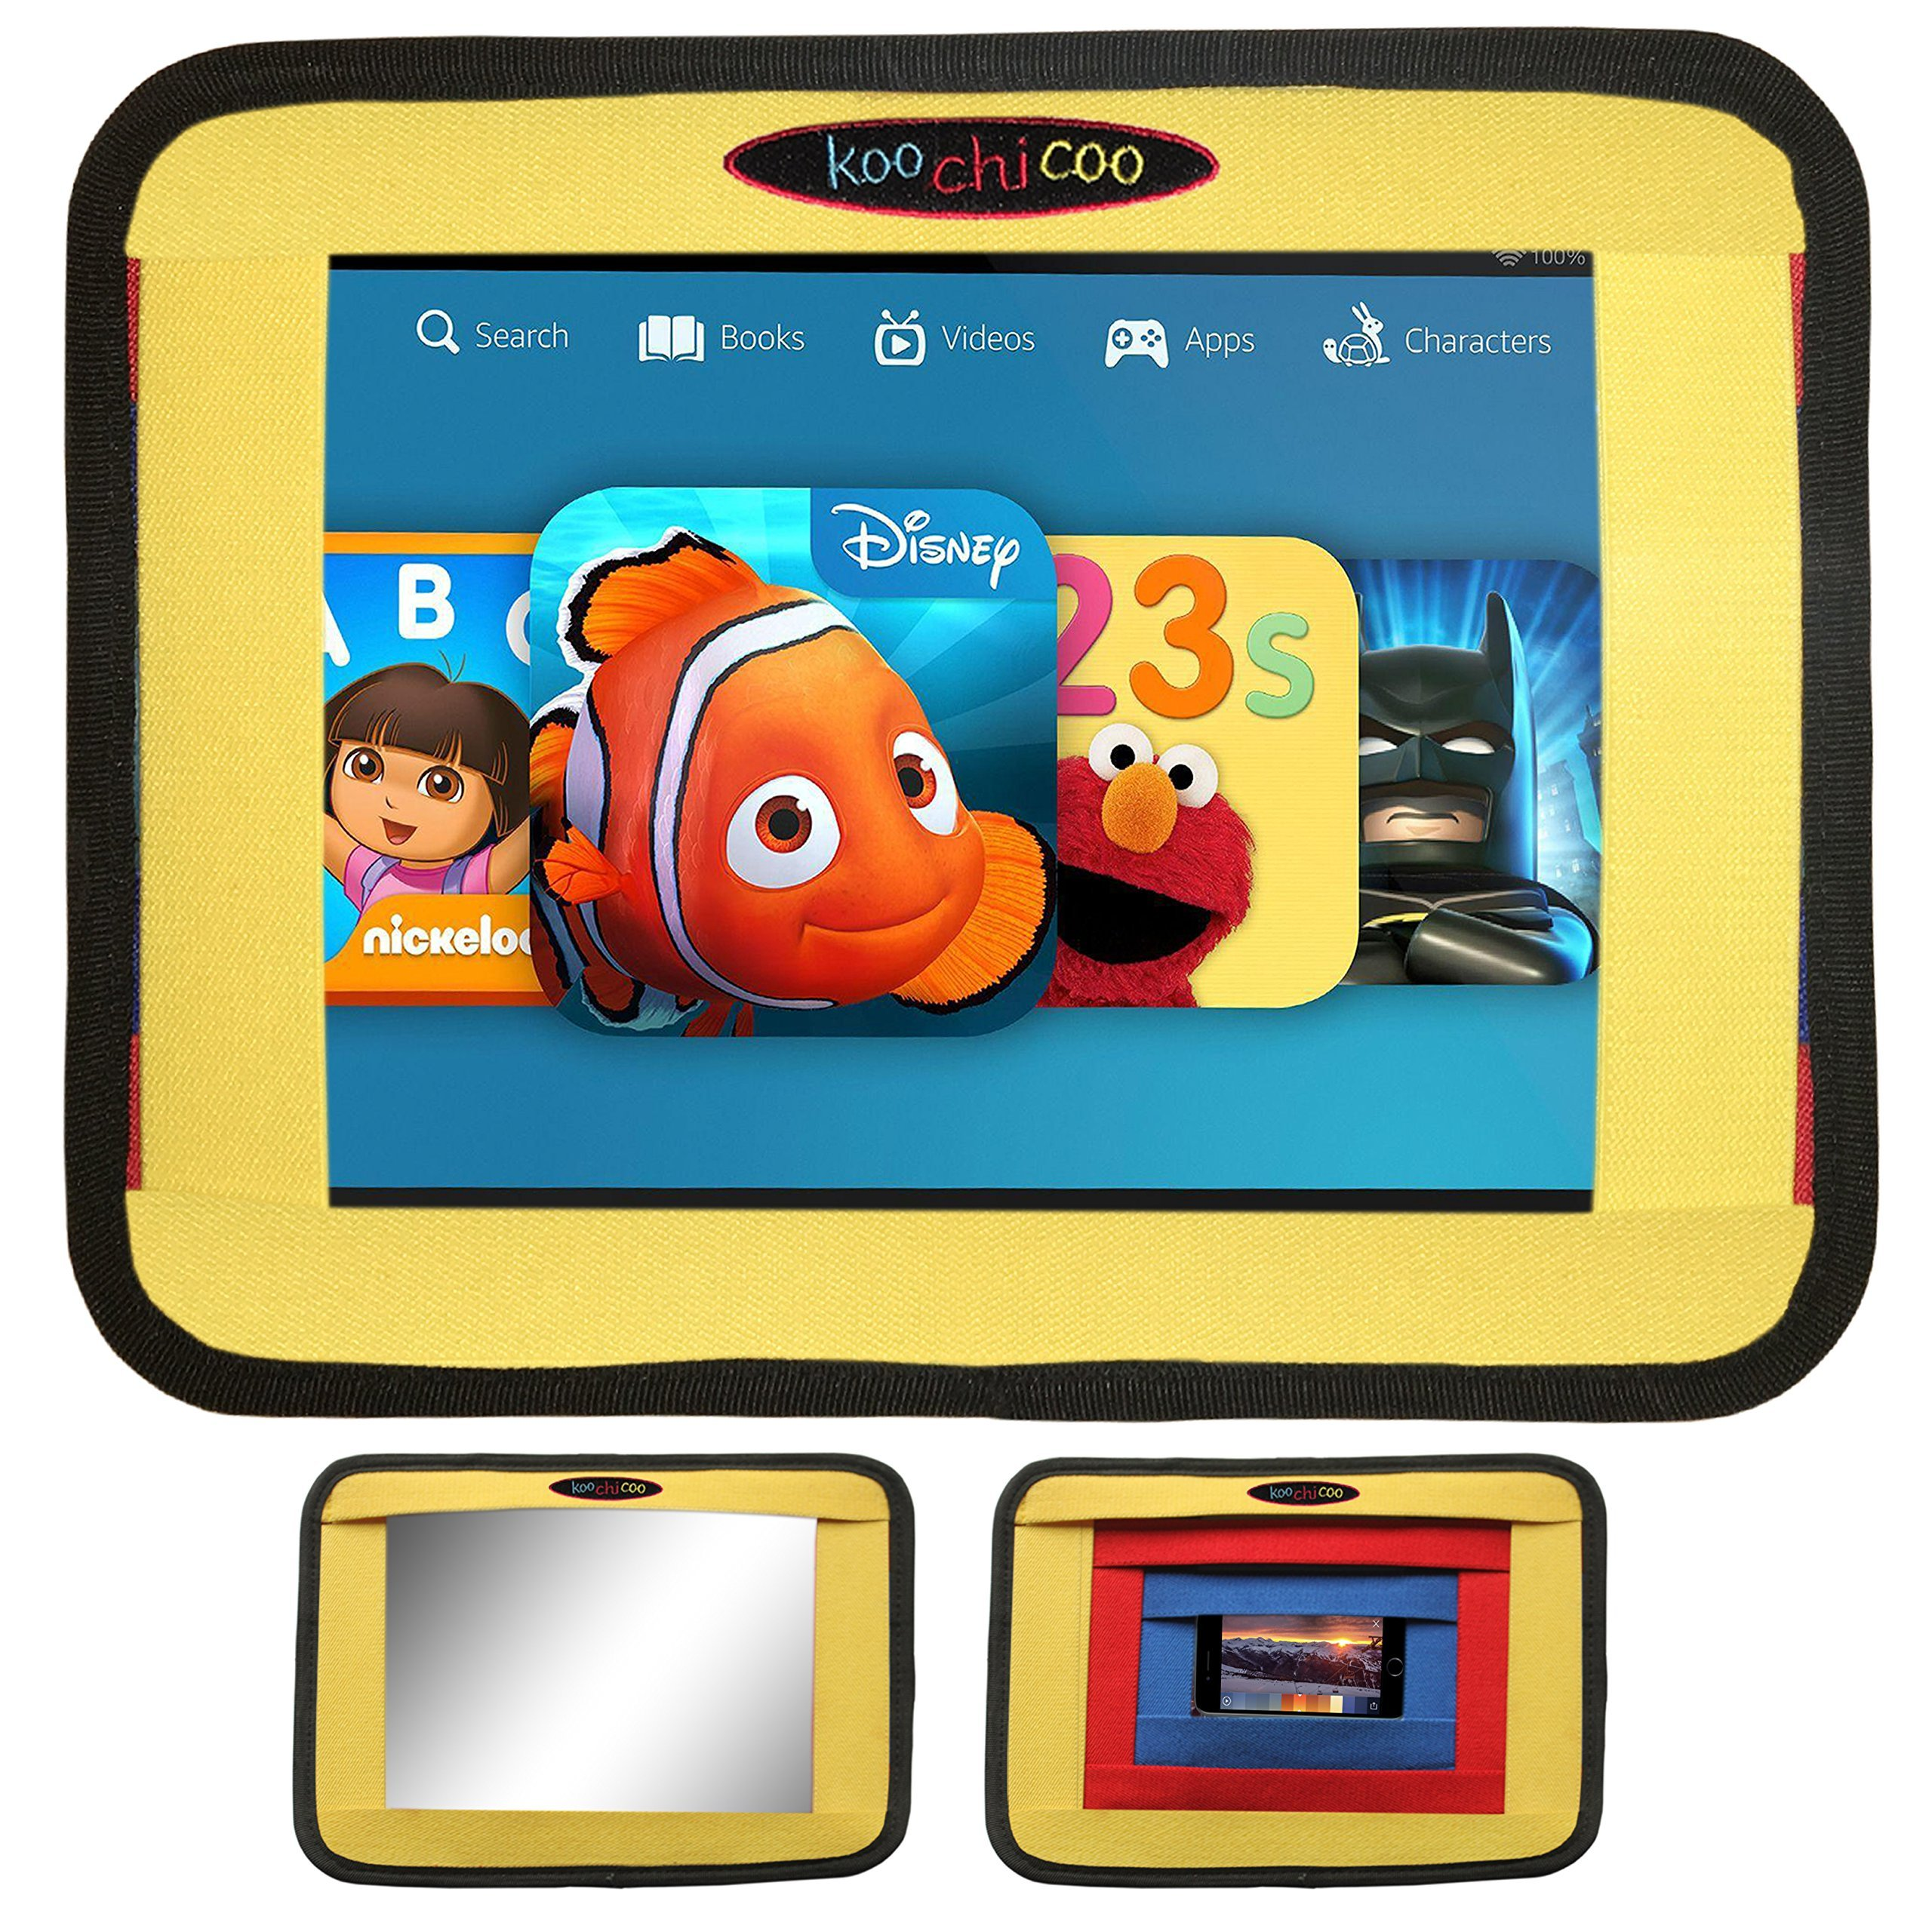 Koochicoo 3 in 1 Rear View Baby Car Mirror, Car Tablet Holder And Car Phone Holder For Kids, Available in 2 Colors * Headrest Mount * Phone Mount * Rear facing Back Seat Baby Mirror * car IPad Holder